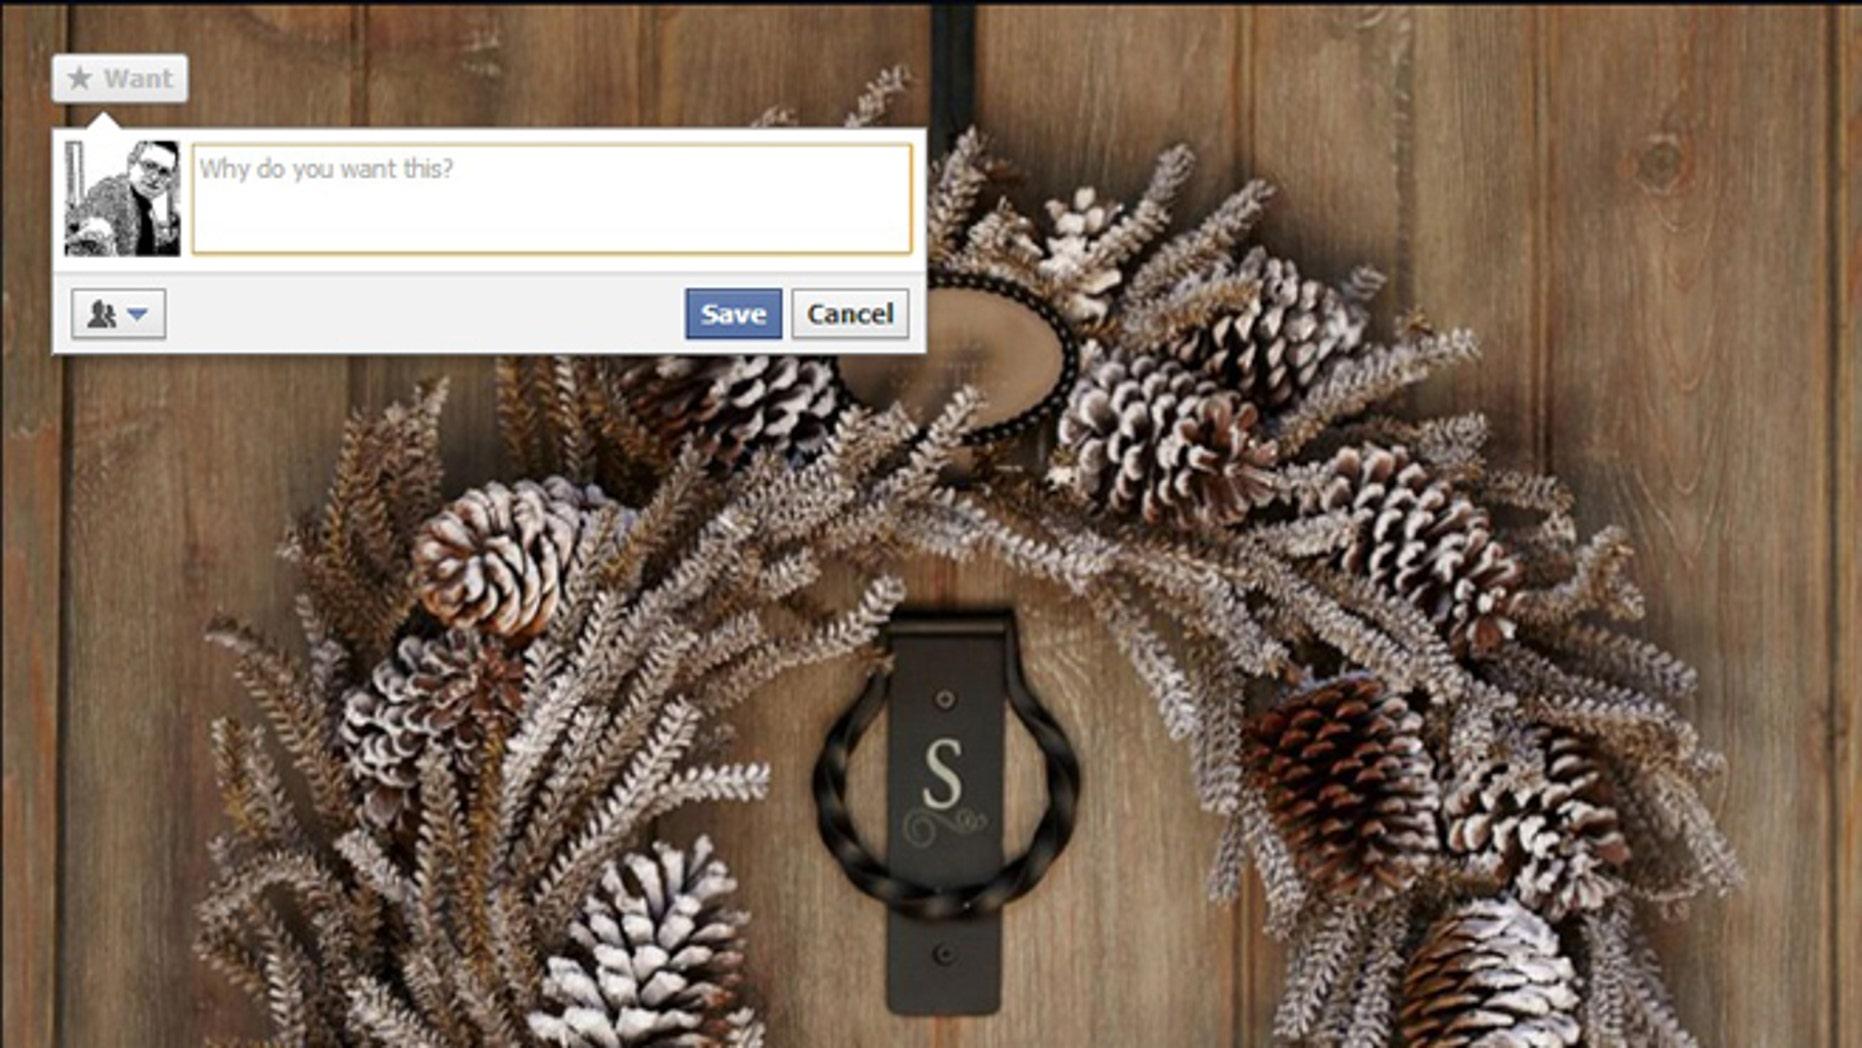 """A new button will soon turn up on the Facebook sites of some stores: a """"want"""" button, that will let people select goods they hope to purchase or find interesting."""